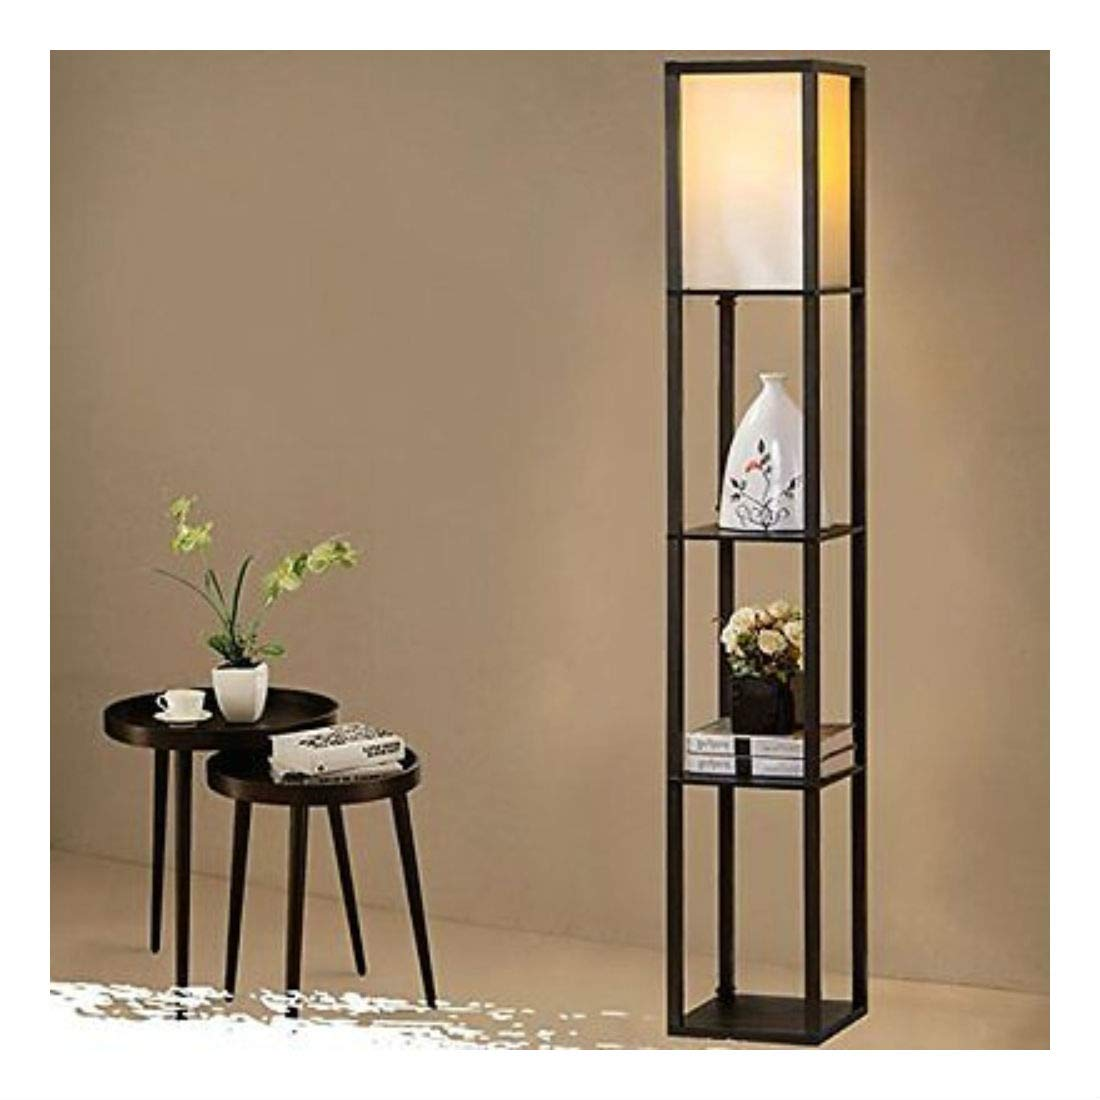 Black modern wood shelf floor lamp off white shade storage living room bedroom home us amazon com